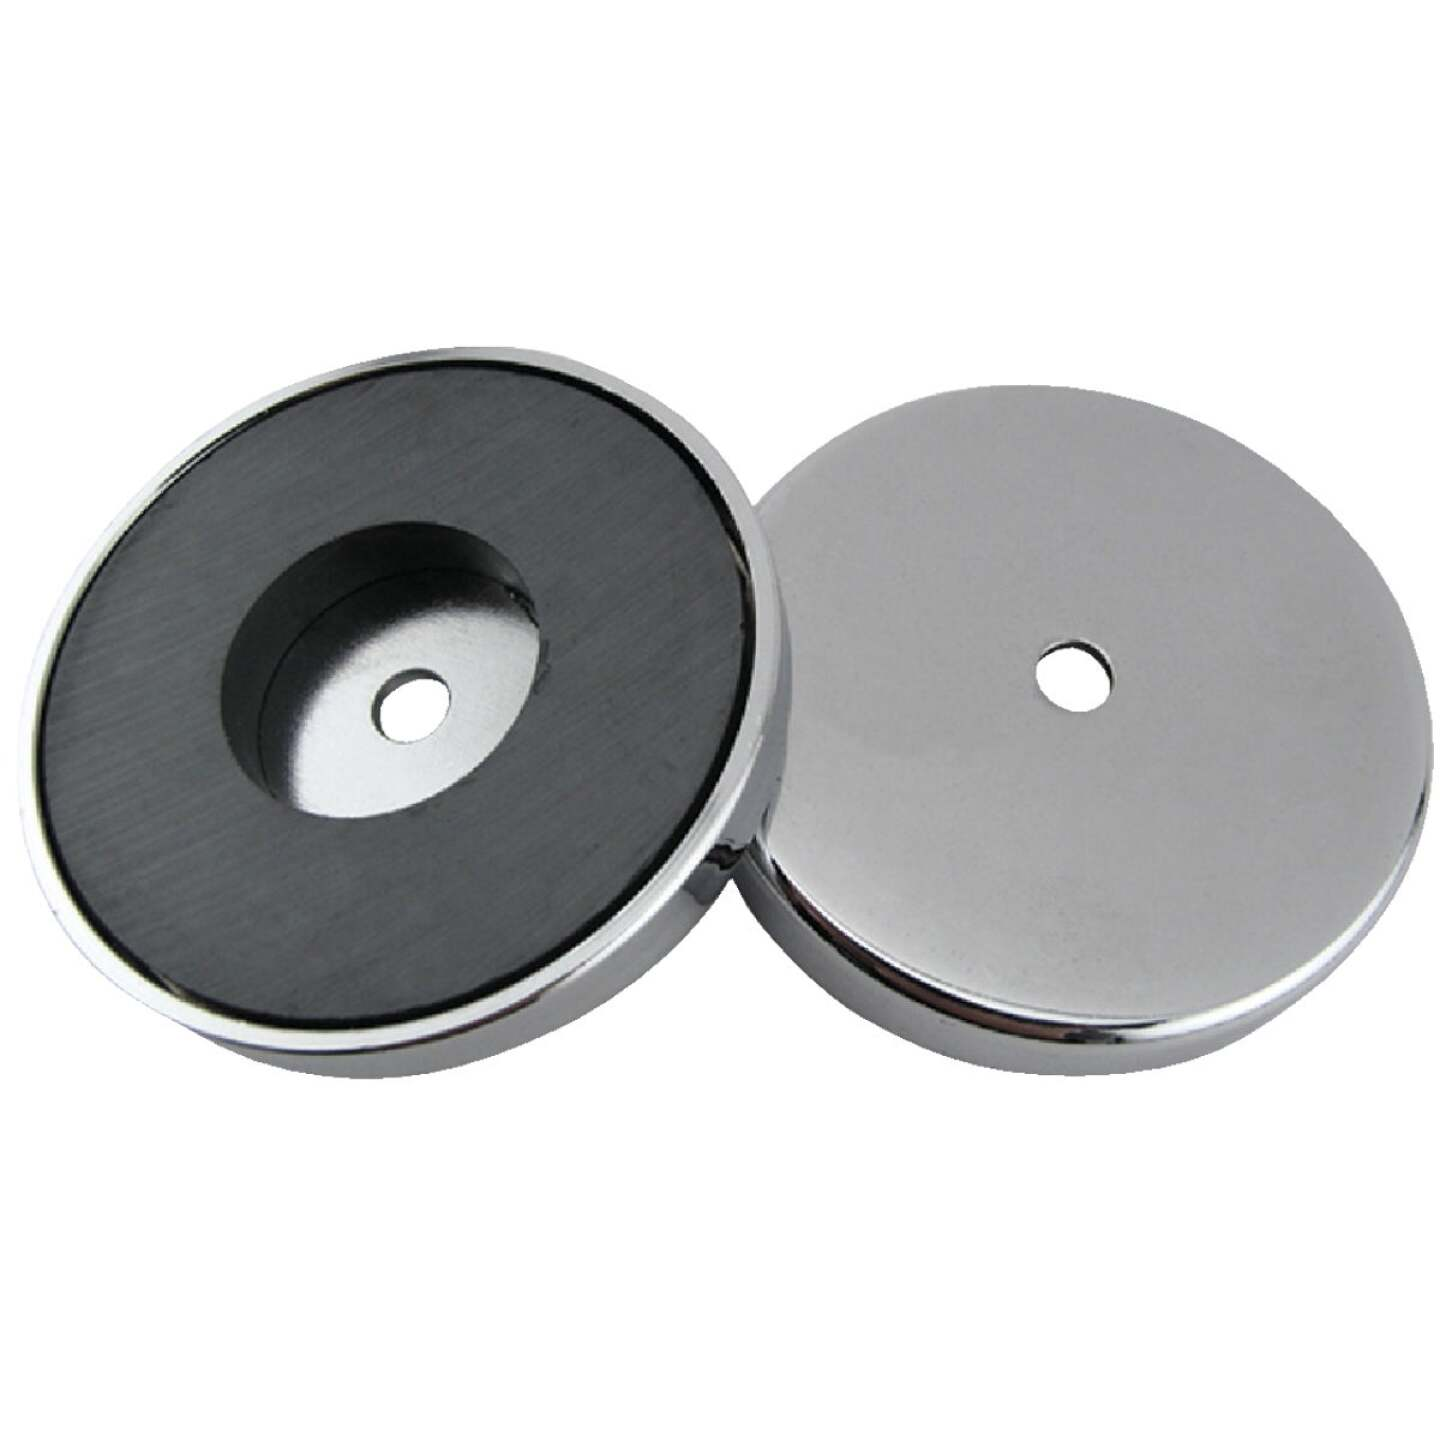 Master Magnetics 3-3/16 in. 95 Lb. Magnetic Base Image 1